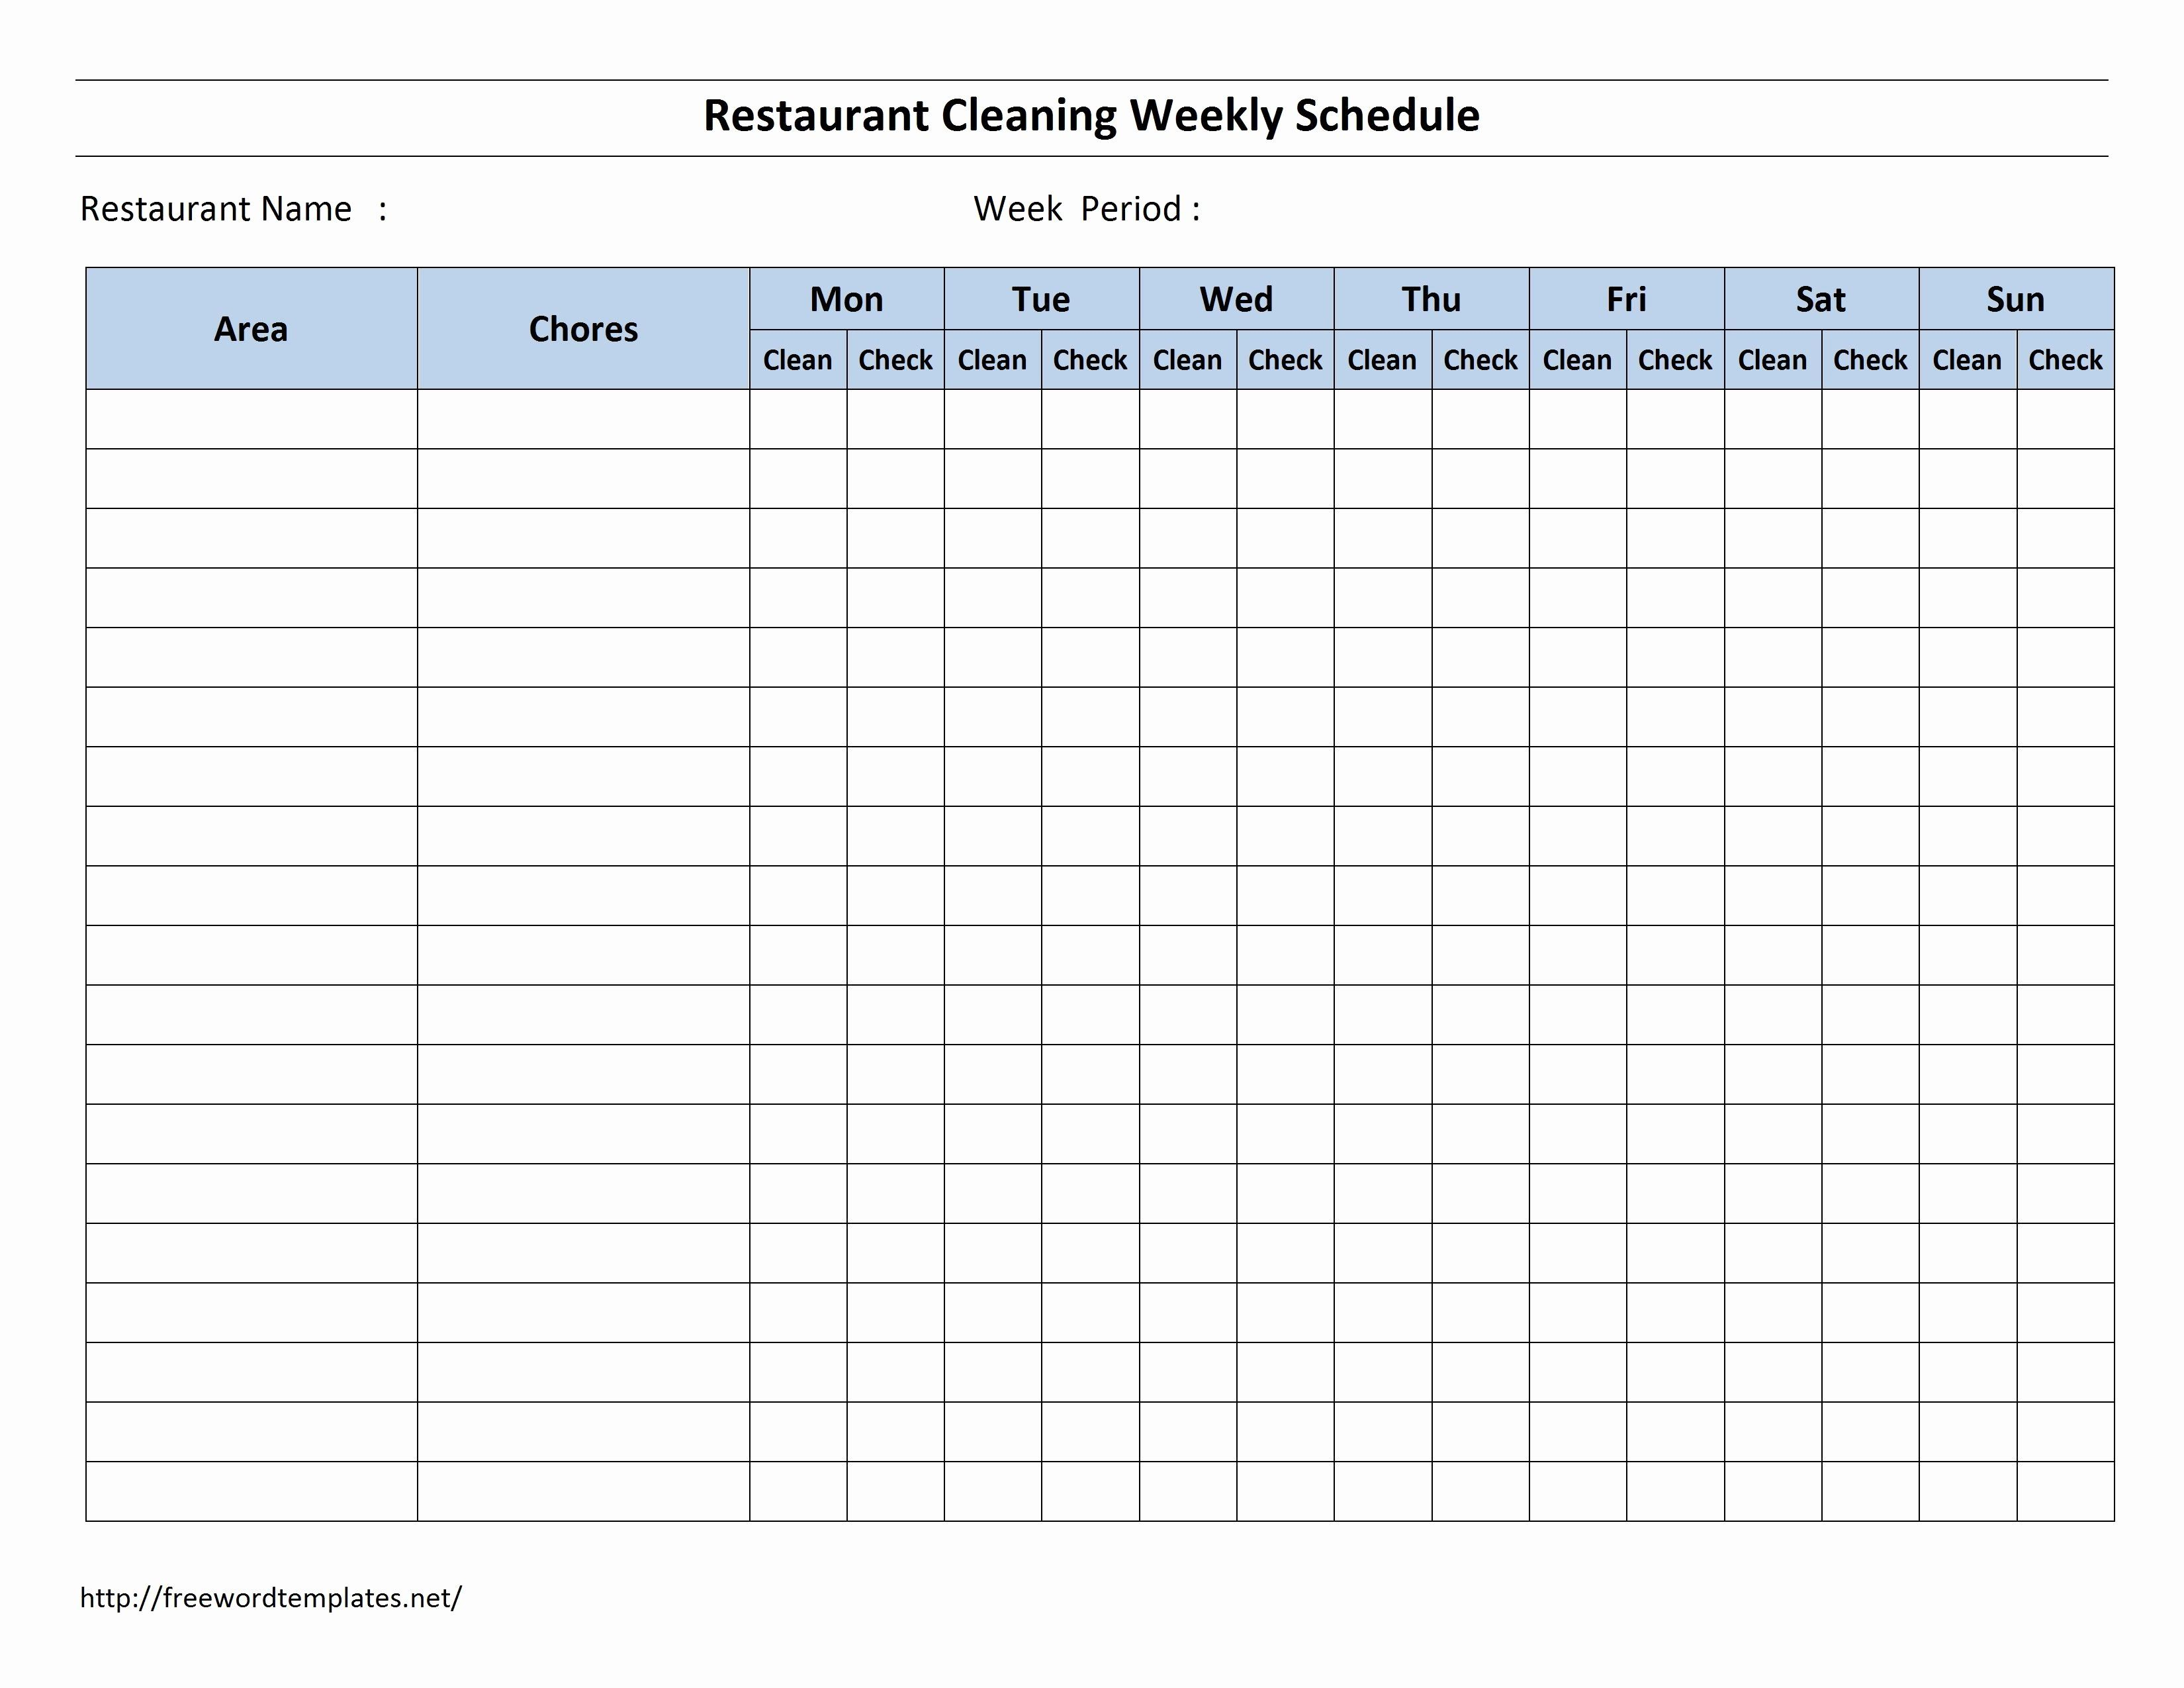 Weekly Cleaning Schedule Template Beautiful Free Cleaning Schedule Forms In 2020 Cleaning Checklist Template Cleaning Schedule Cleaning Schedule Templates Free restaurant cleaning checklist template